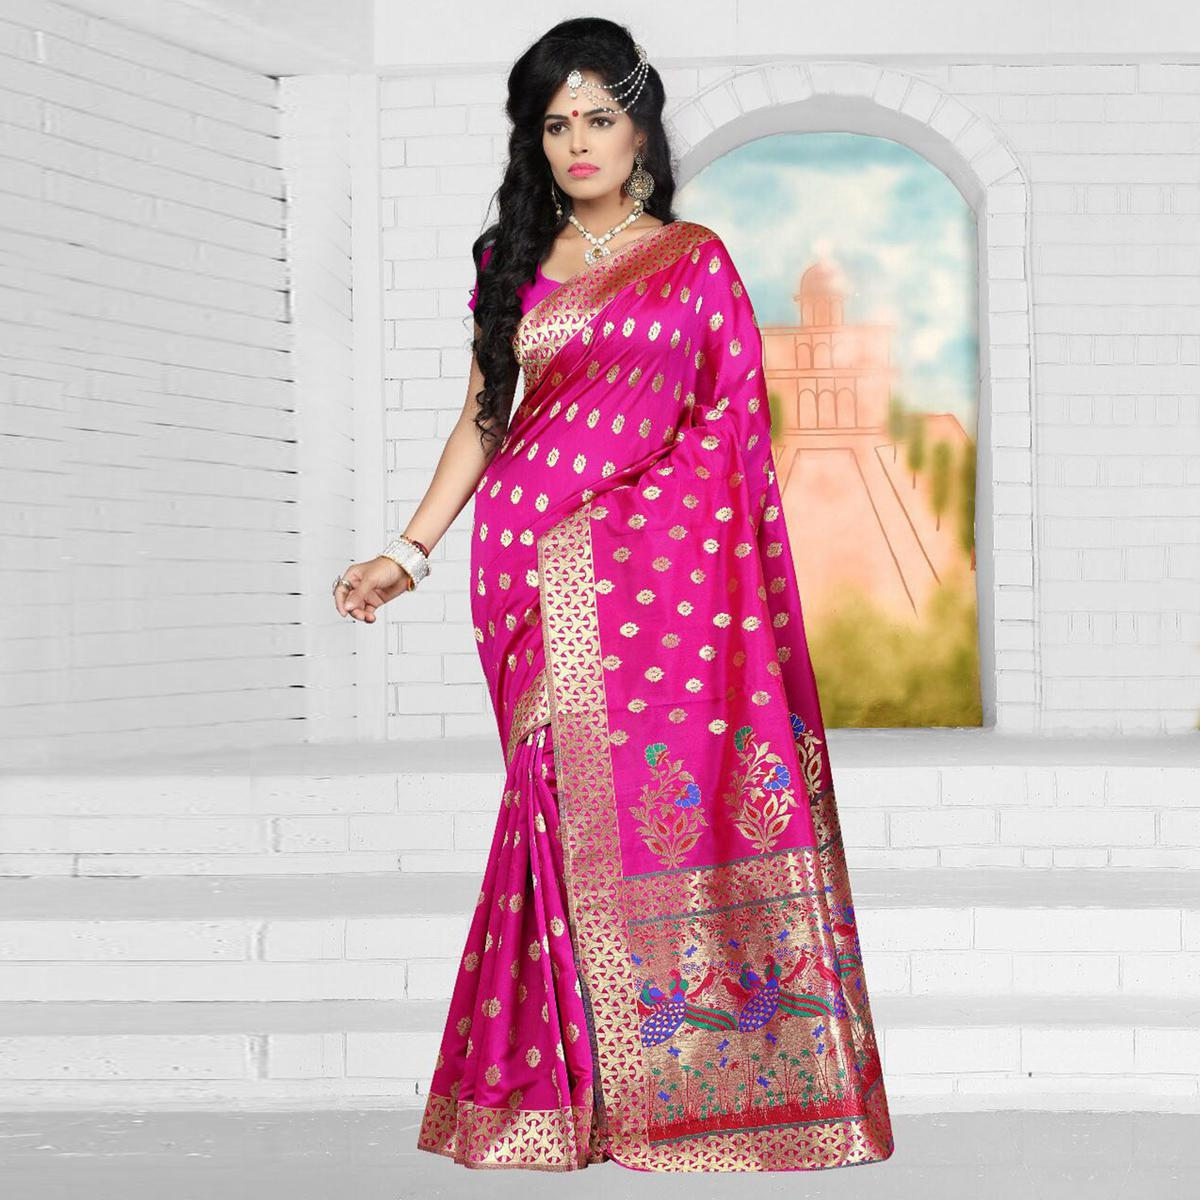 2168aa92b2 Buy Hot Rani Pink Semi Paithani Silk Saree online India, Best Prices,  Reviews - Peachmode